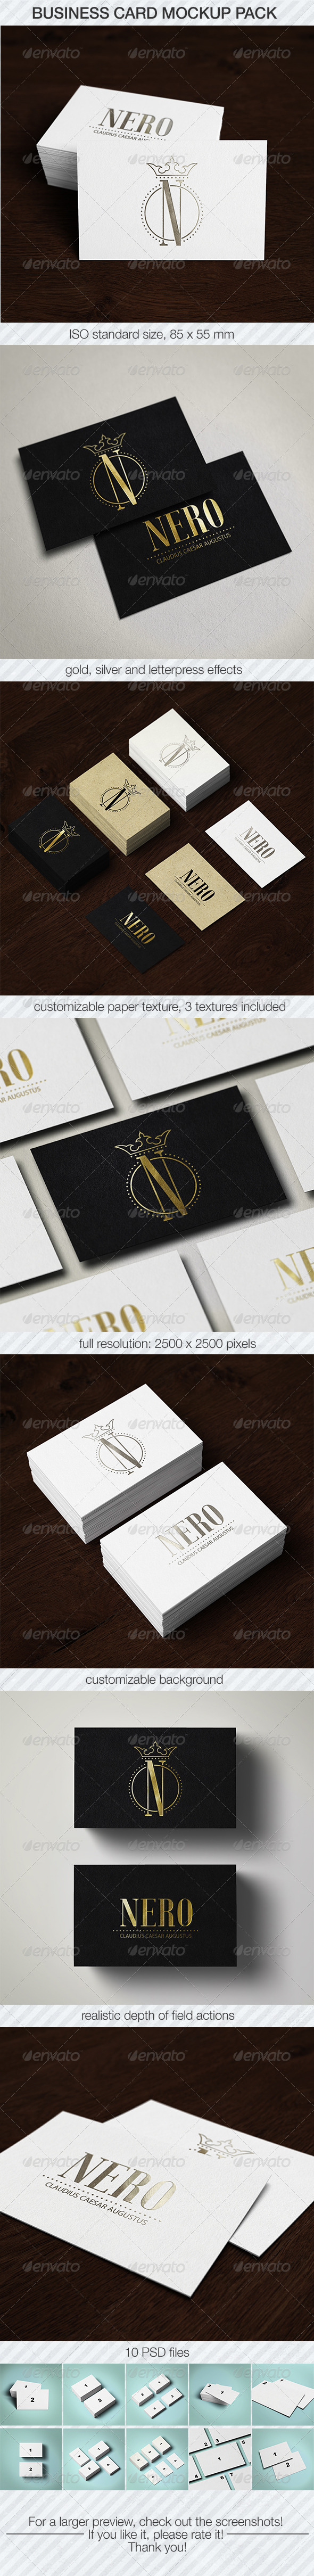 Business Card Mockup Pack by milostudio | GraphicRiver